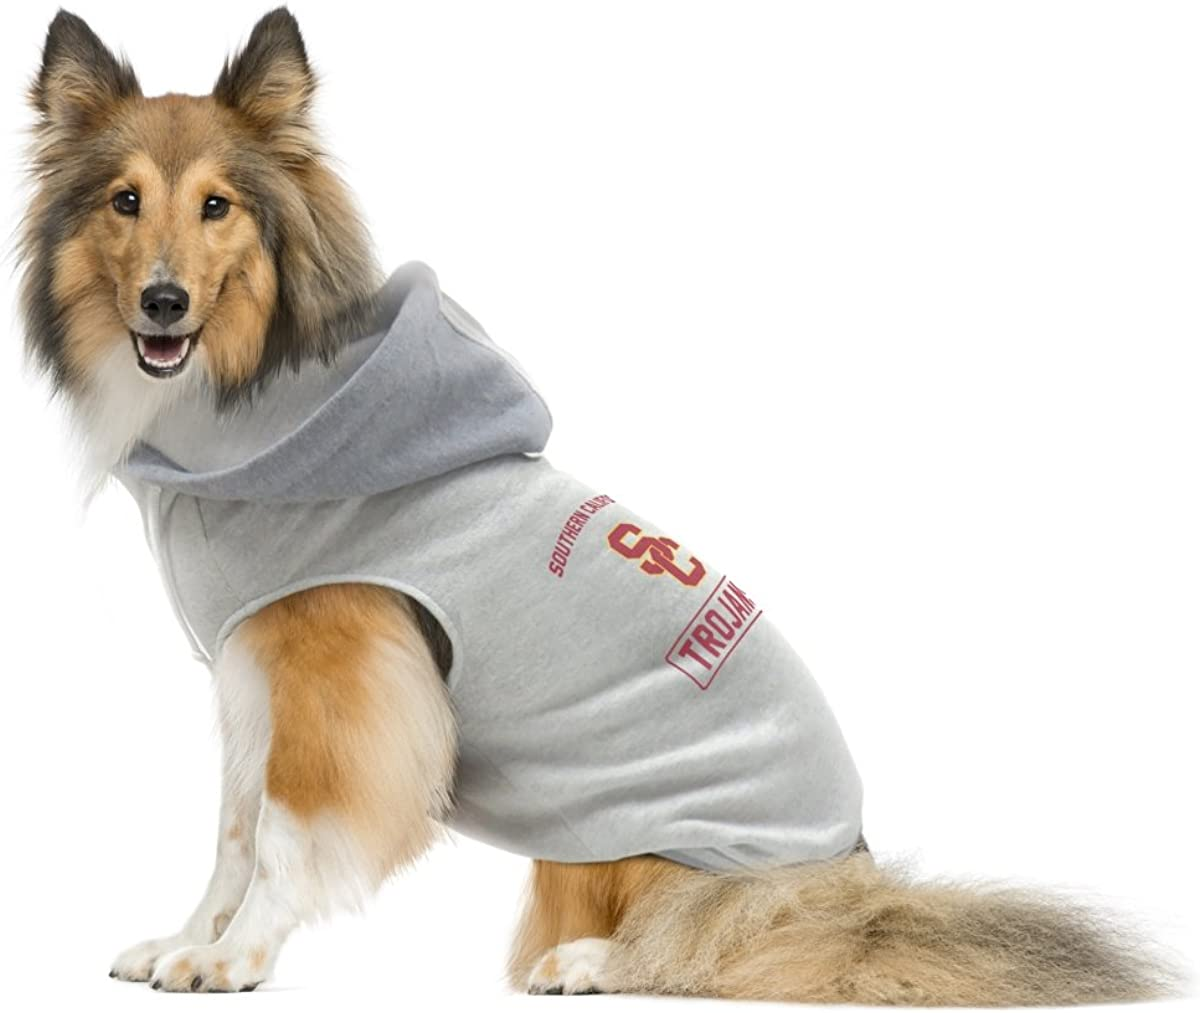 Hoodie Sweatshirt Designed for Dogs and Cats Littlearth NCAA Unisex NCAA Pet Hoodie Crewneck Sweatshirt